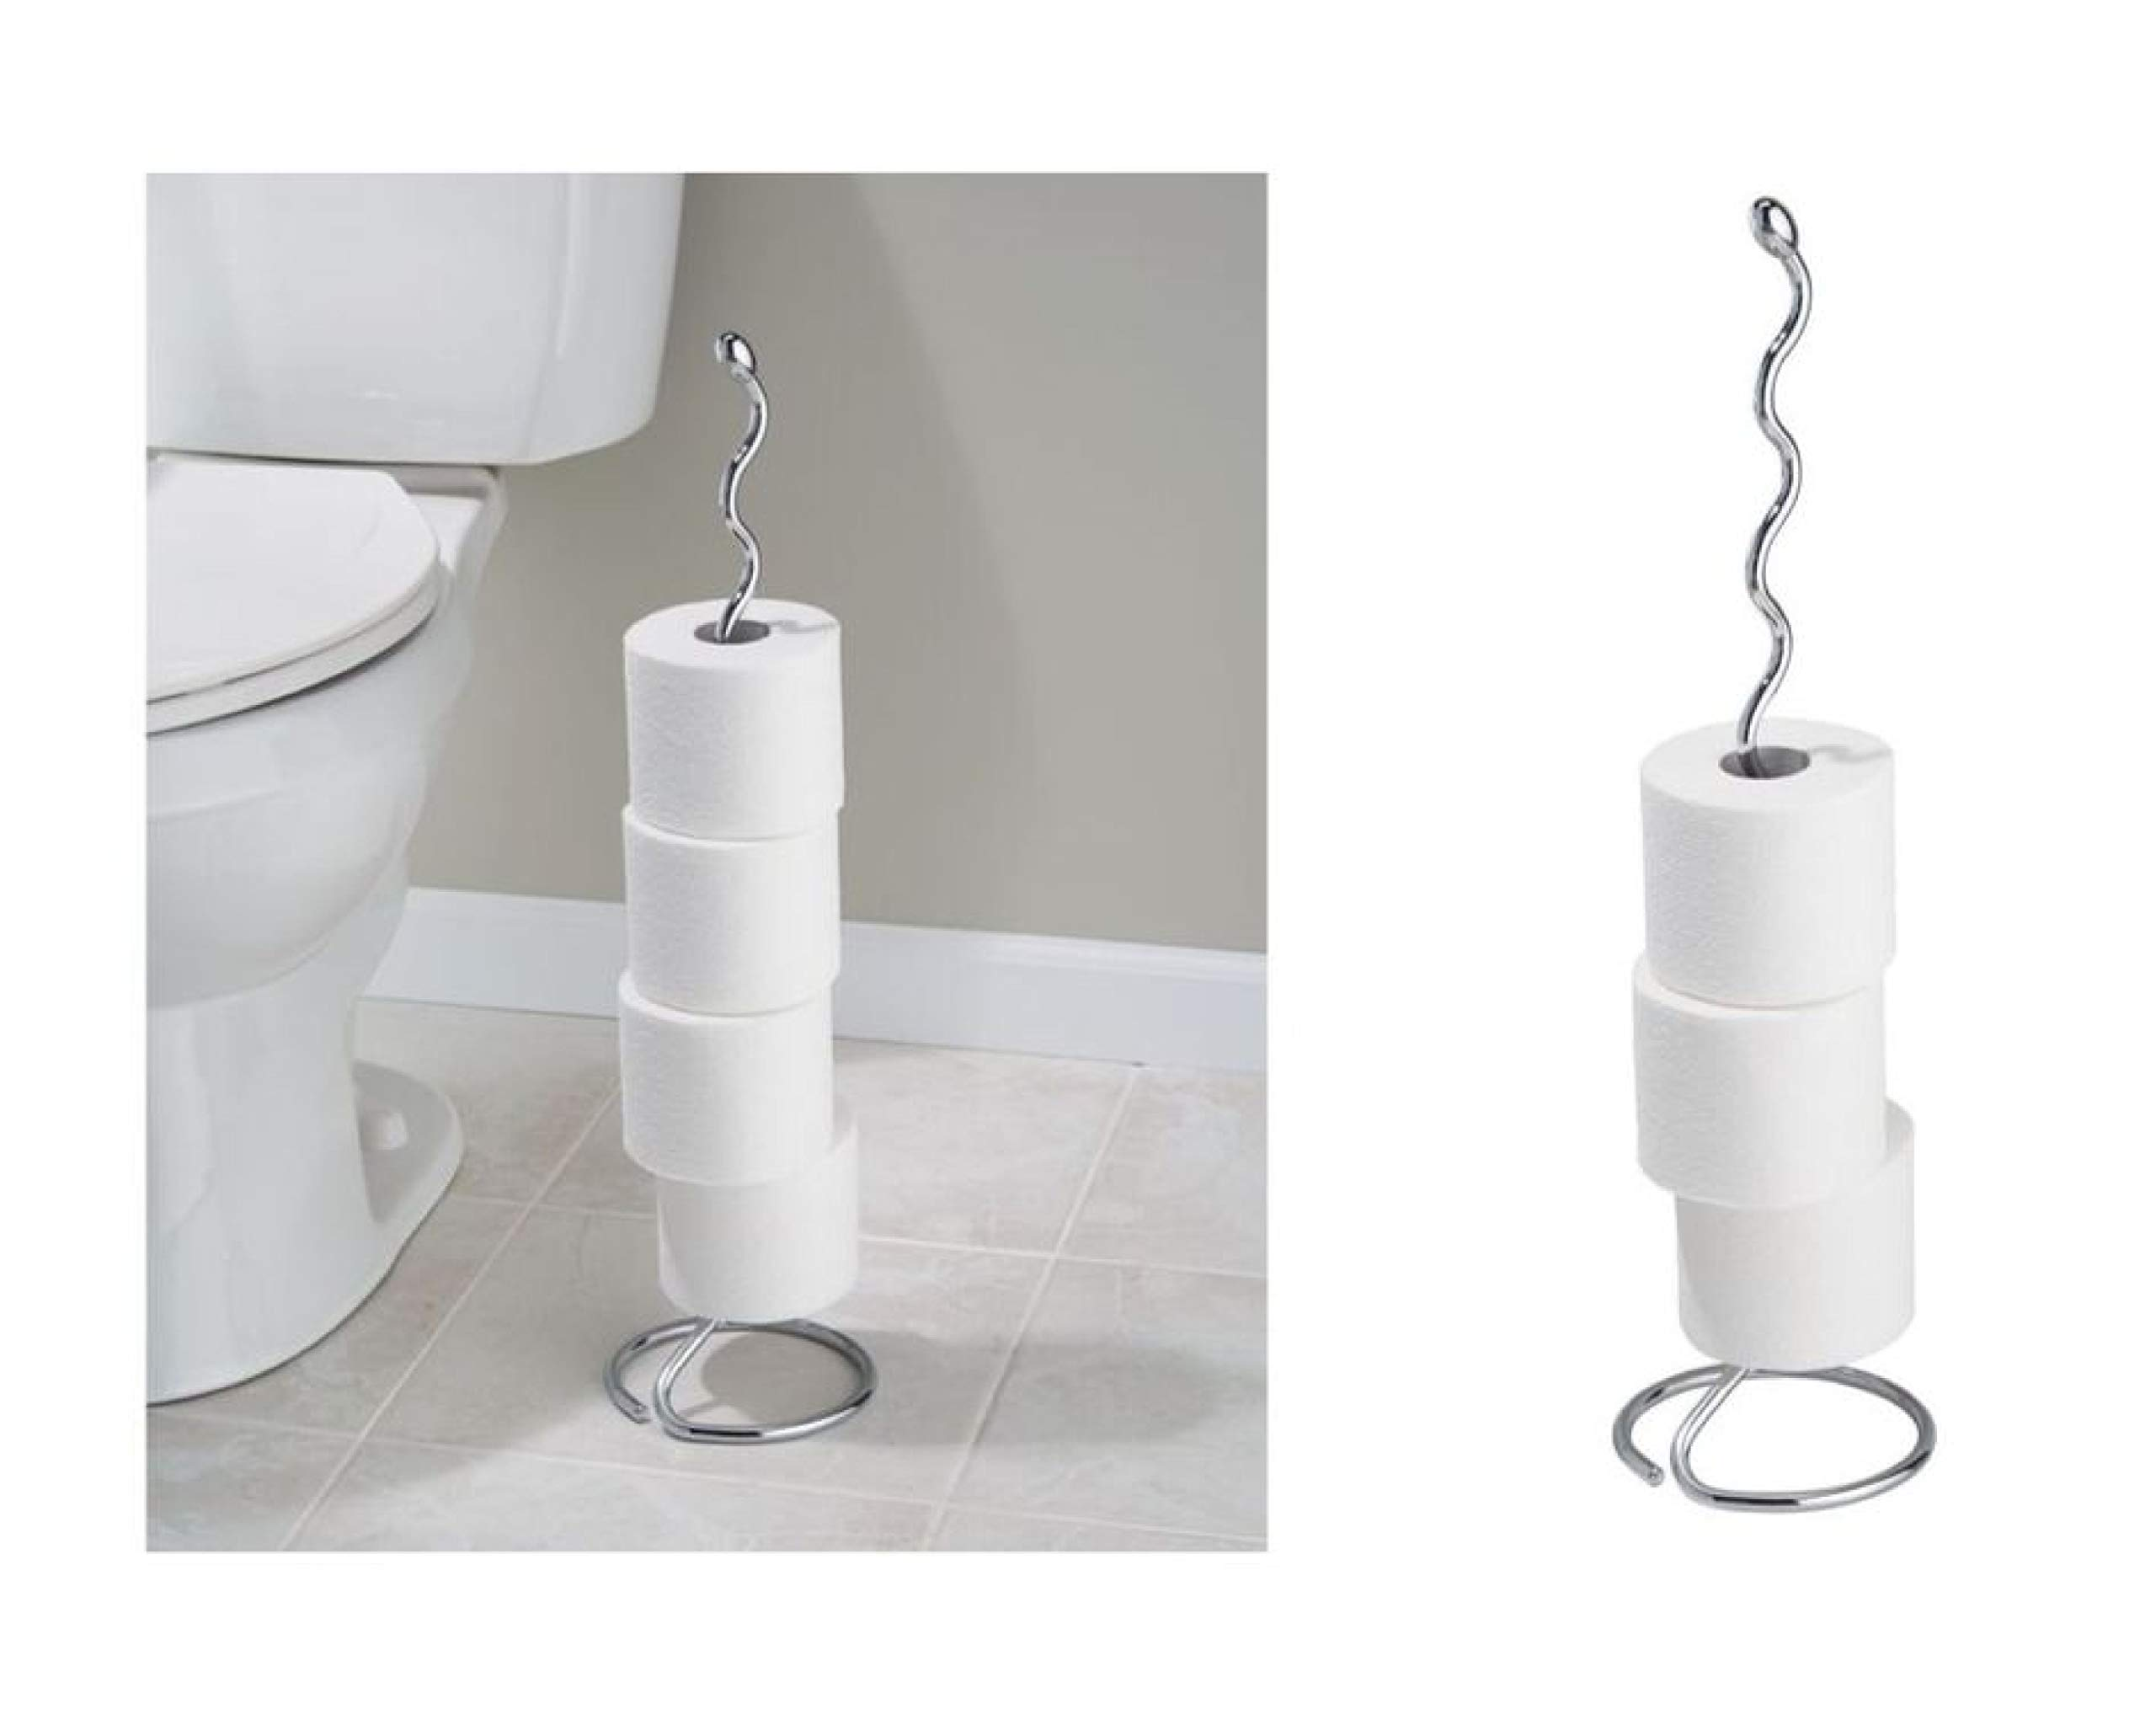 iDesign Orbinni Metal Toilet Tissue Roll Reserve for Bathroom, Compact Squiggle Organizer Caddy, Holds 4 Rolls of Paper, Chrome by iDesign